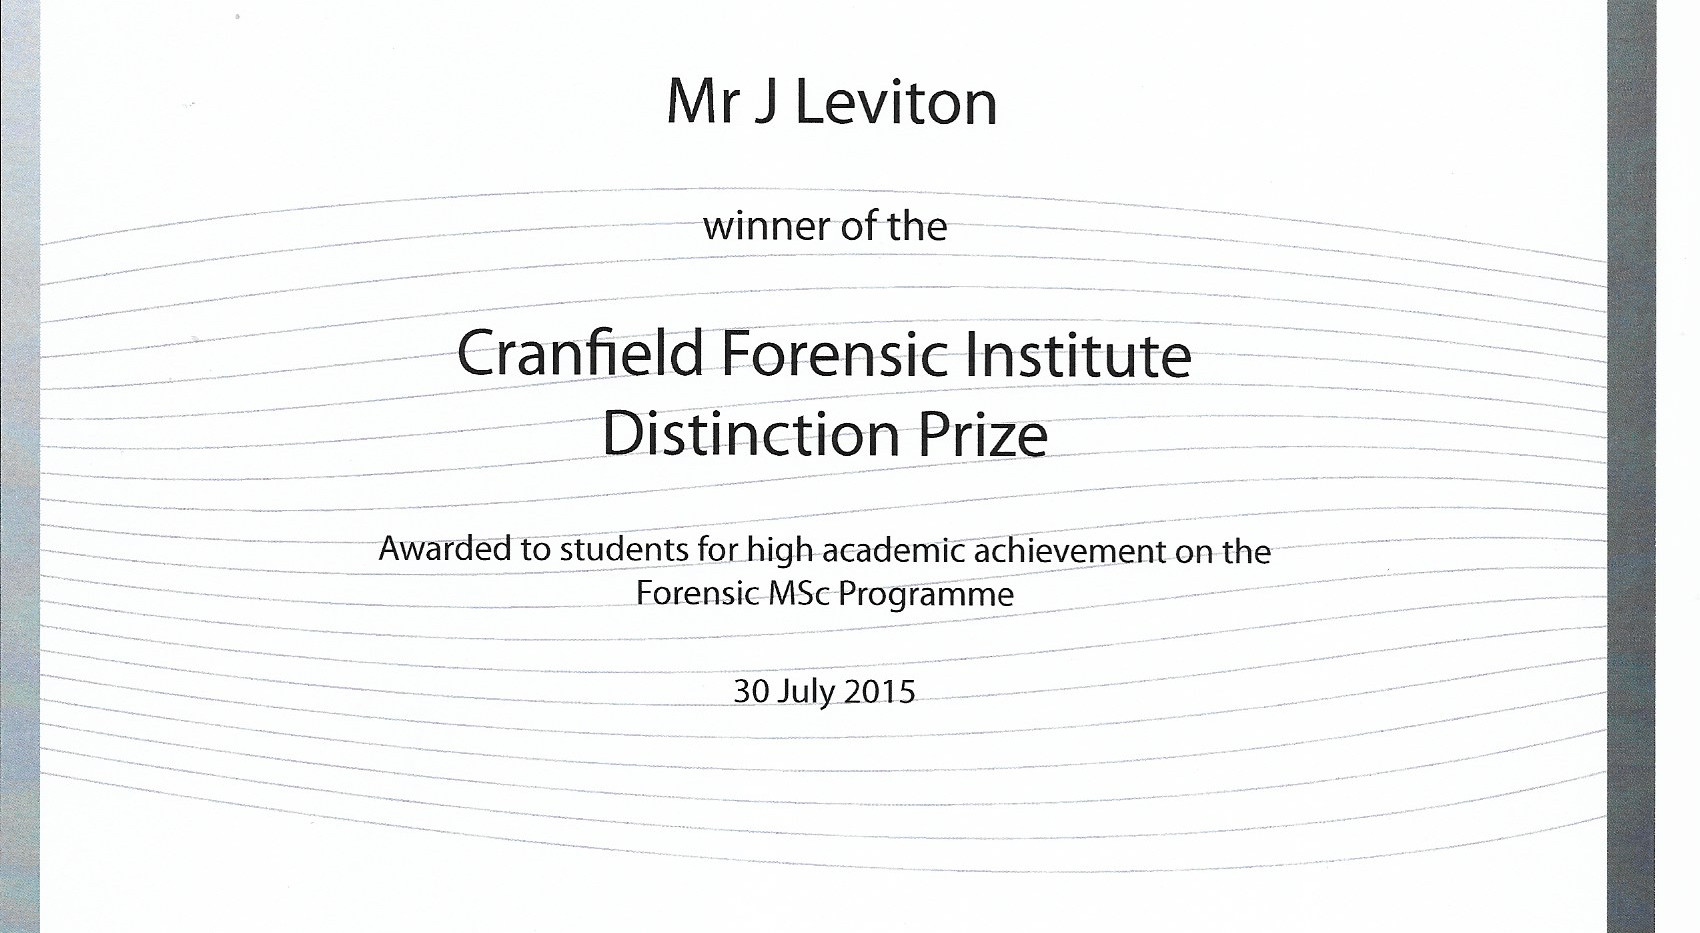 MS Forensic science distinction